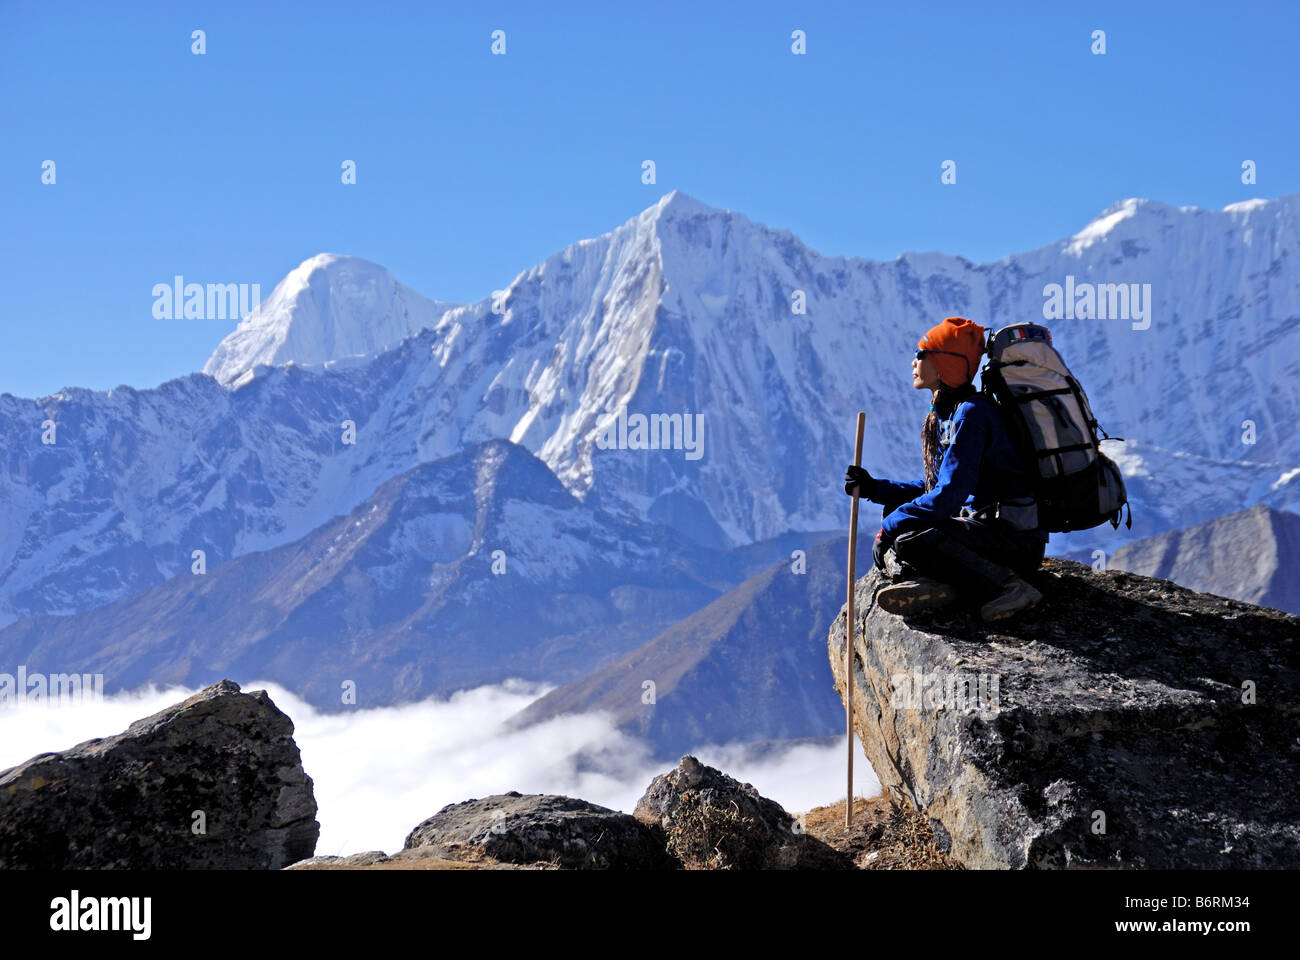 Trekking in Nepal - Stock Image